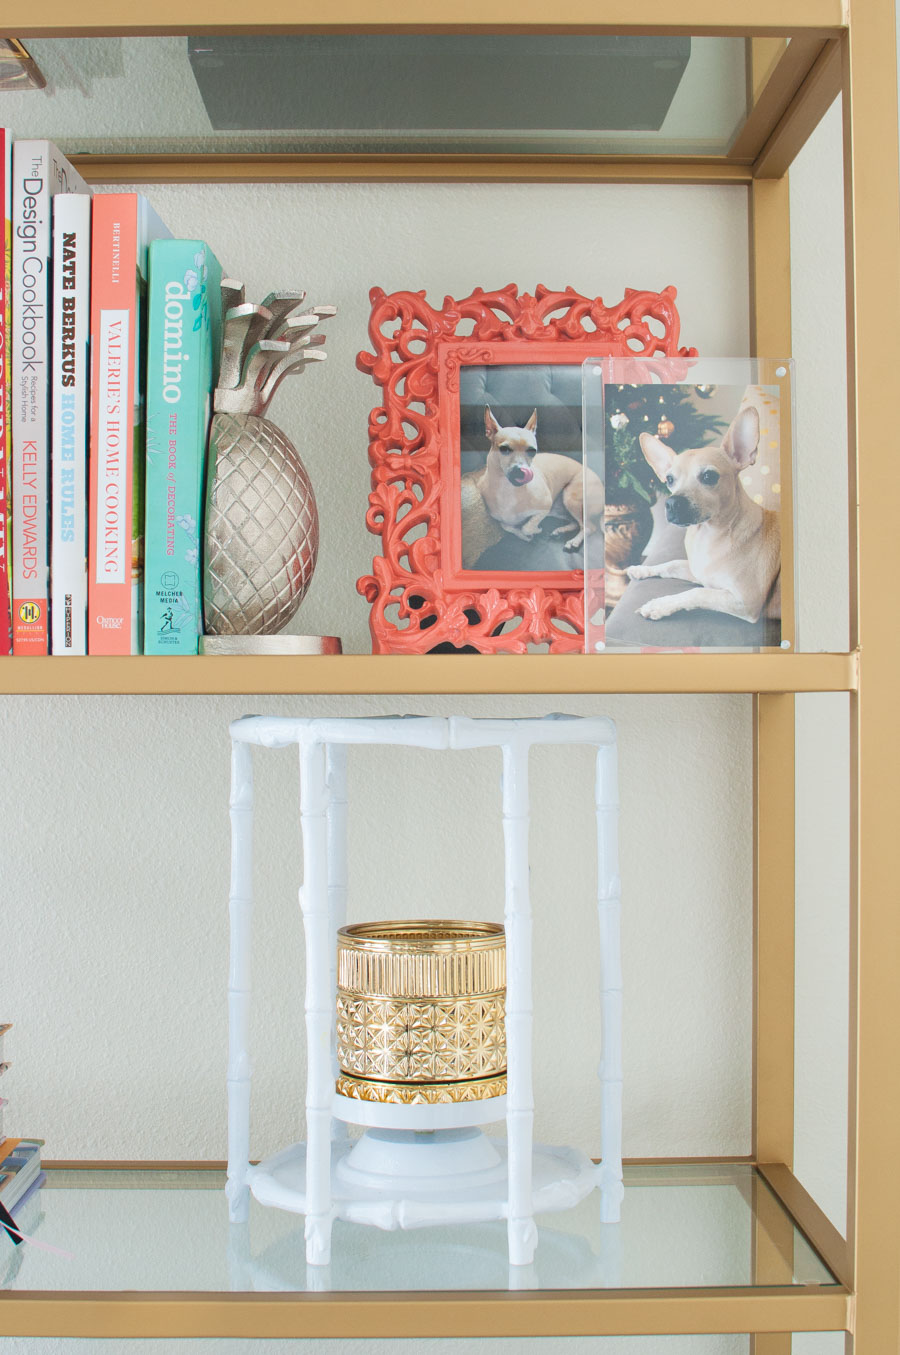 Books, photos and chinoiserie decor adorn a chic bookcase etagere in a black, white and gold living room.